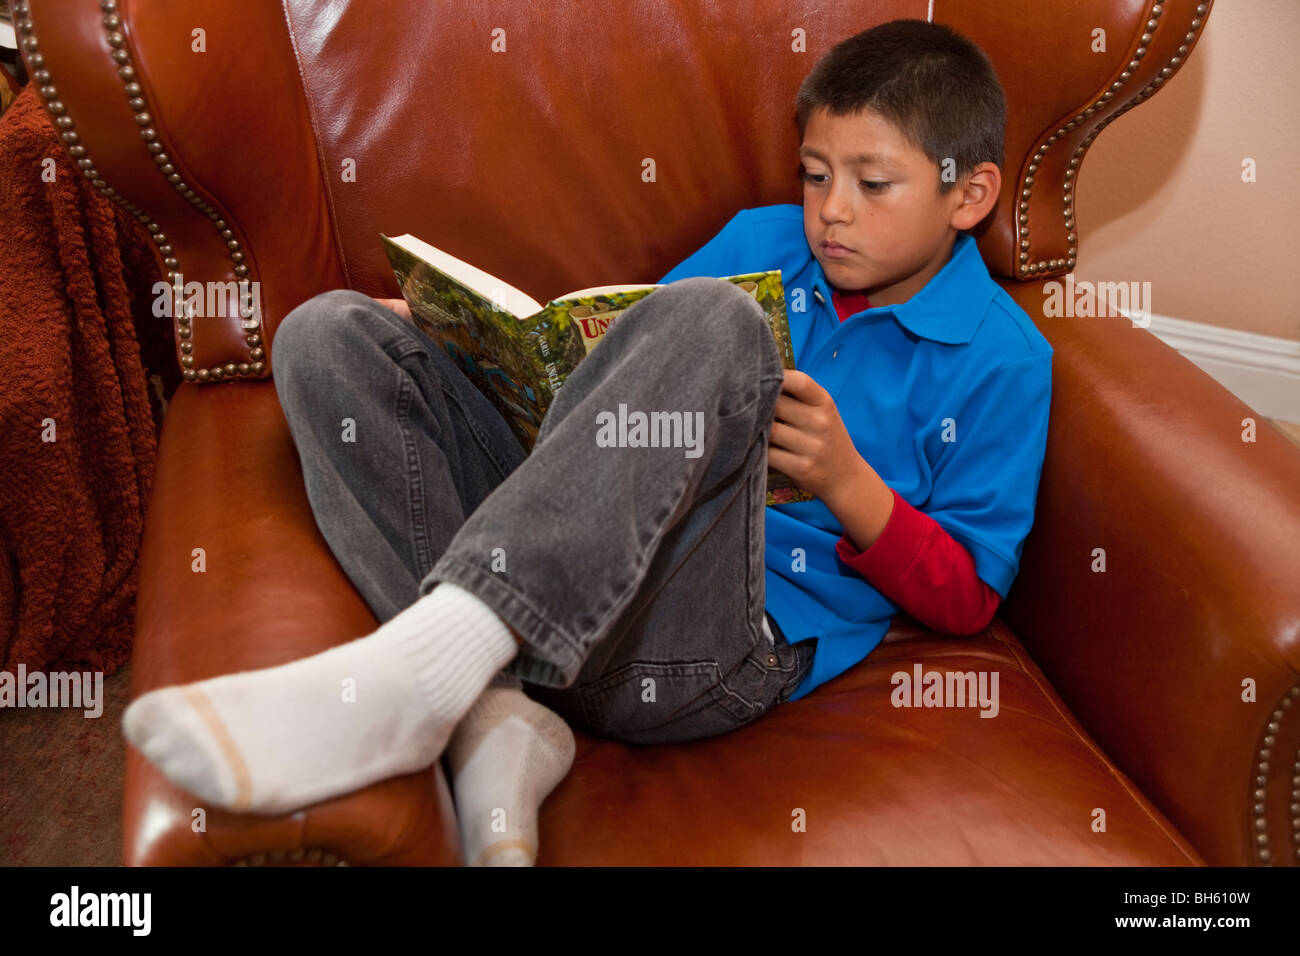 multi racial diversity racially diverse multicultural cultural 8 year old boy reading book relax relaxing relaxes - Stock Image